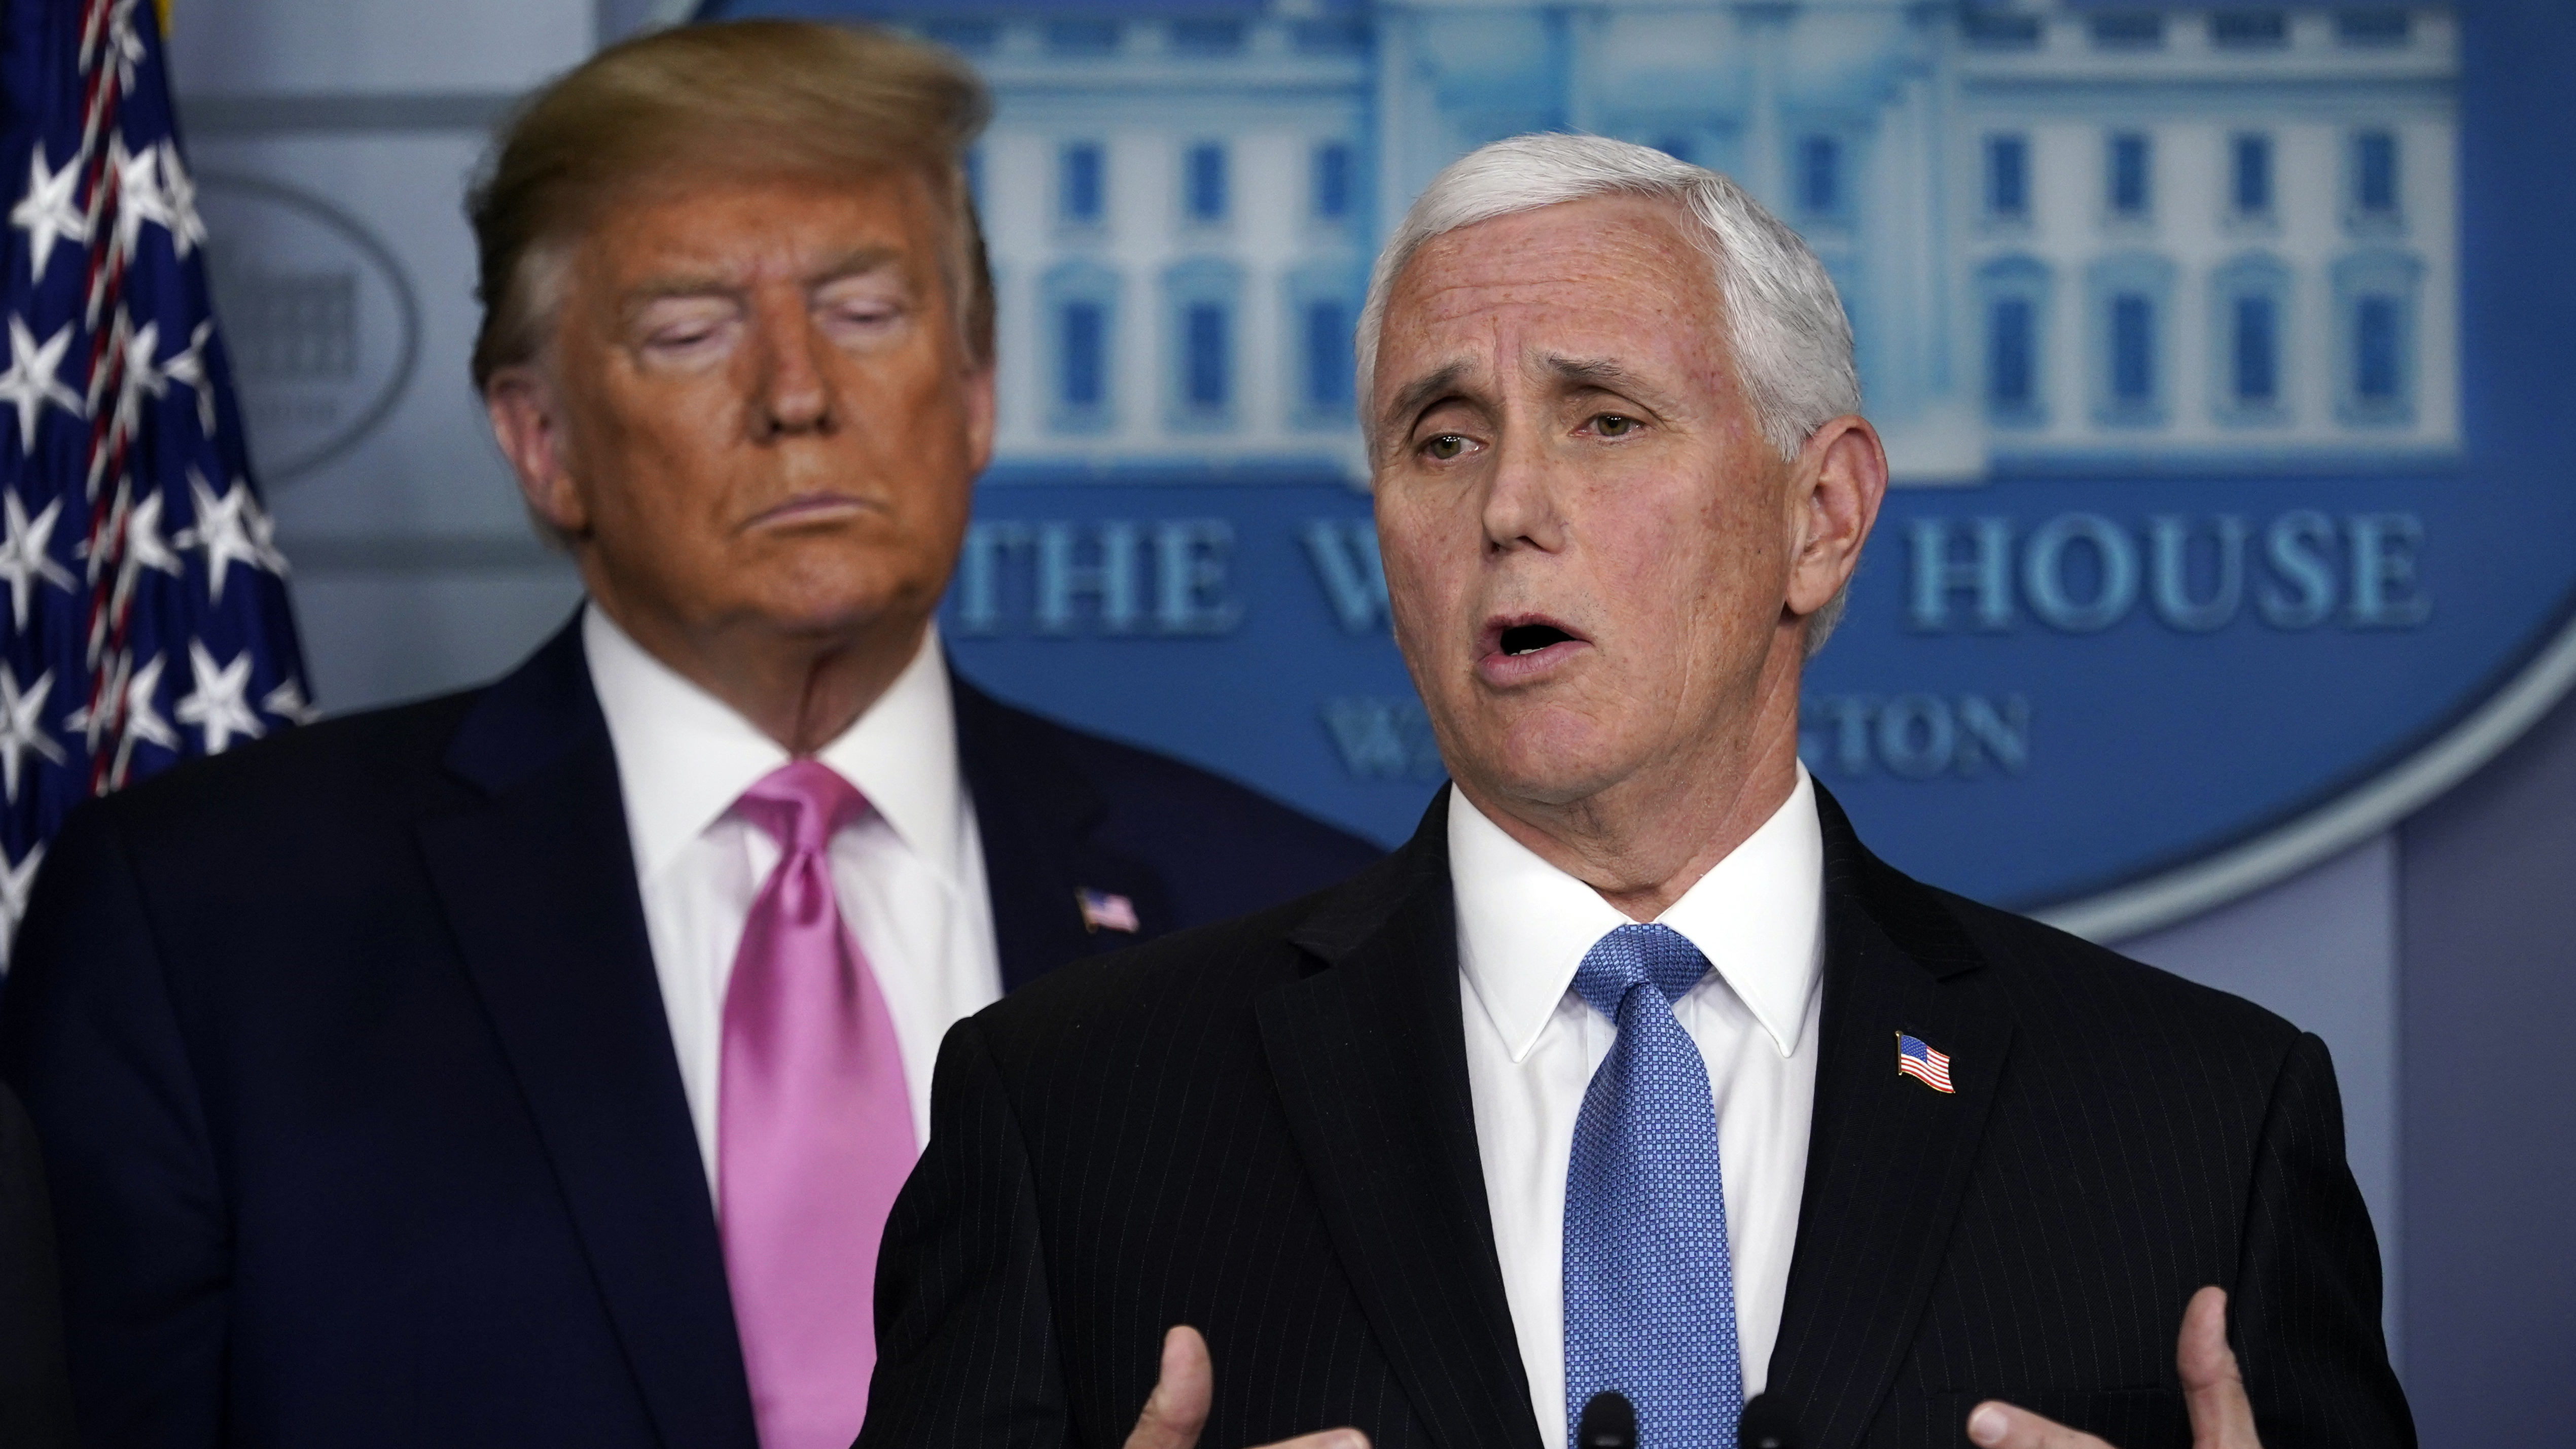 Pence says states will receive help if coronavirus spreads